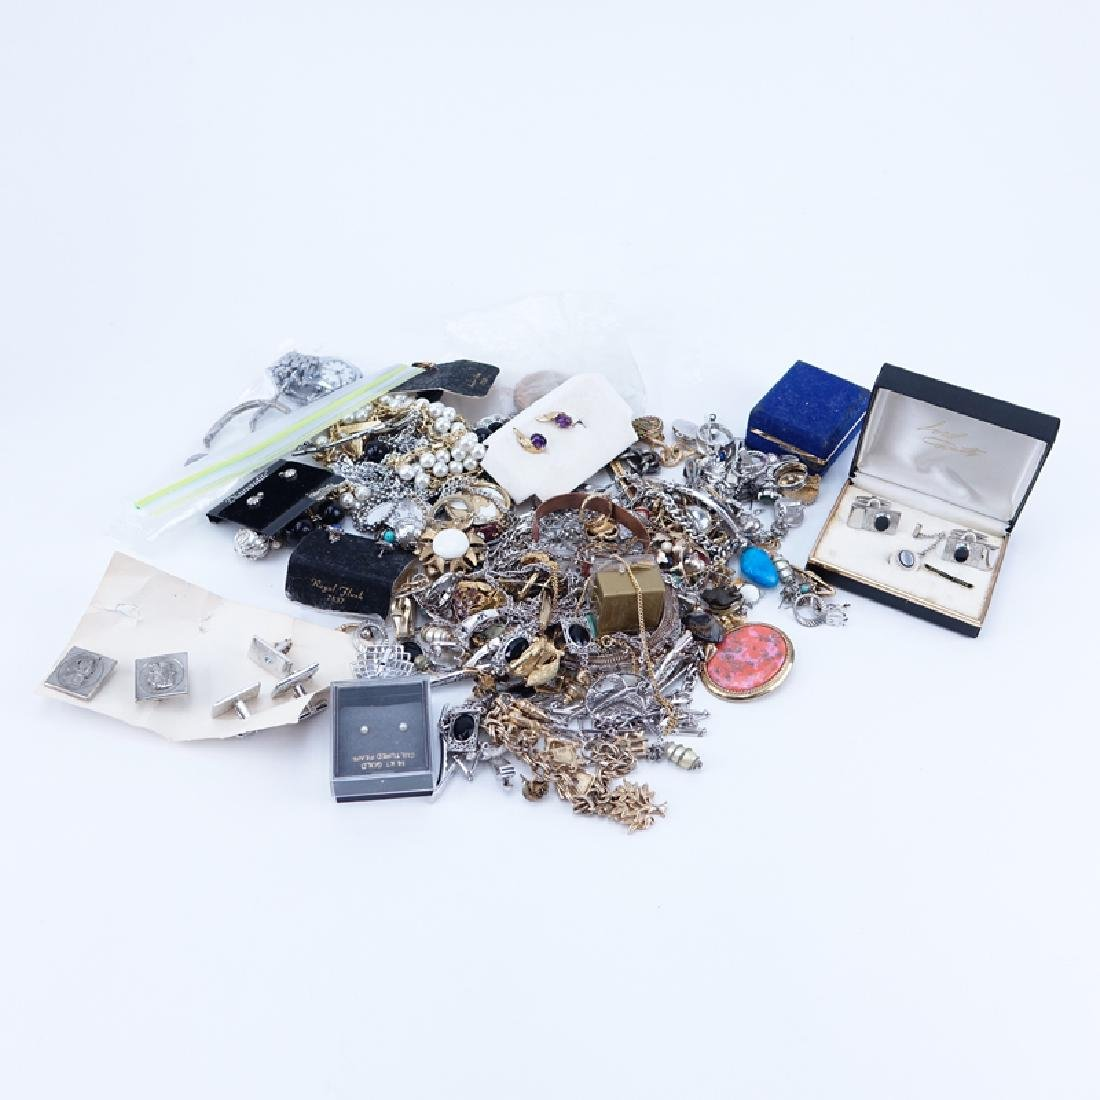 Group of Assorted Costume Jewelry along with Odds and